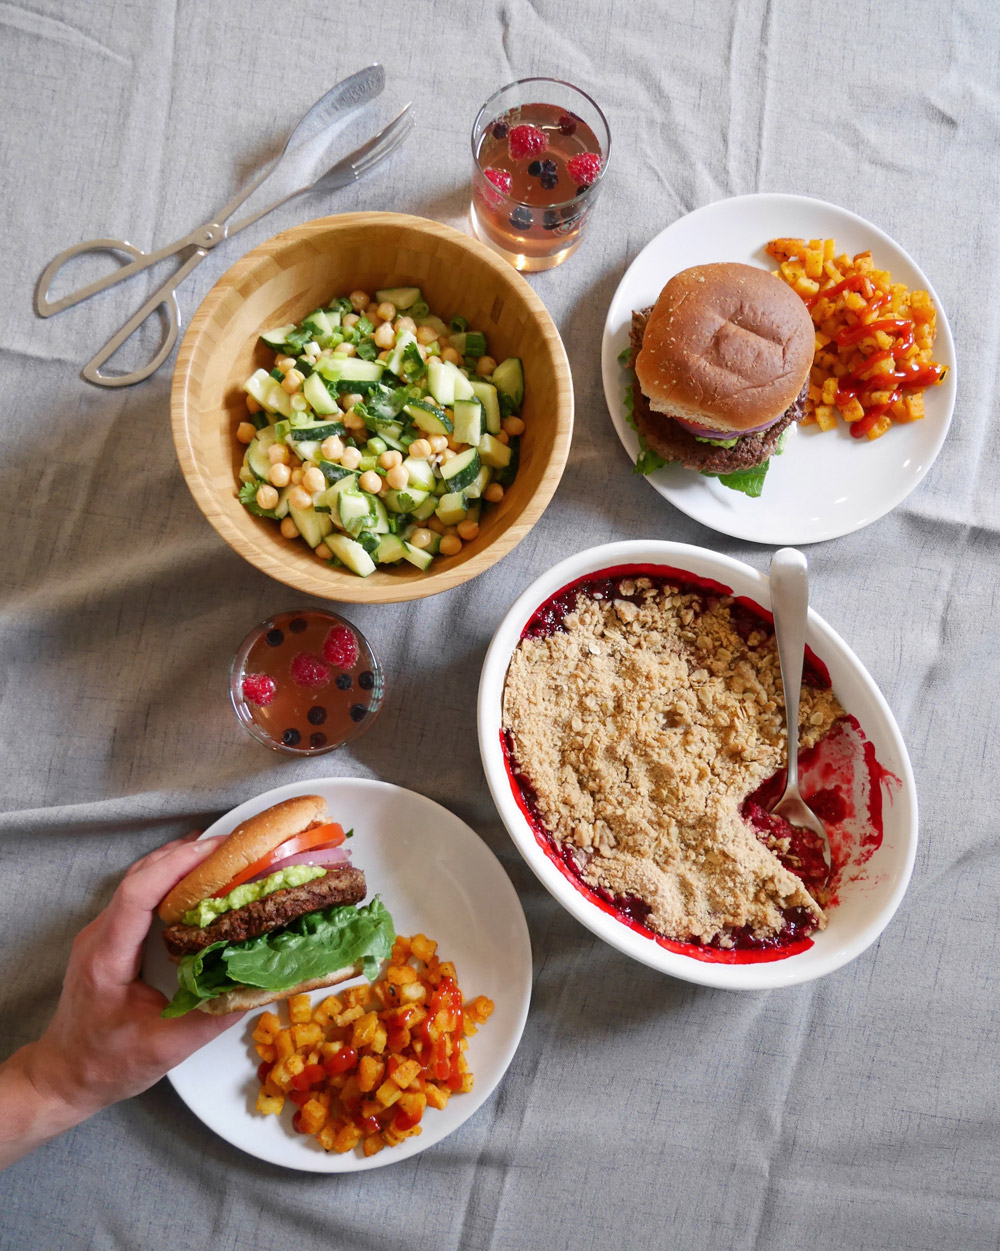 Plant-Based Burger, Cucumber & Chickpea Salad, Raspberry Crisp, Summer Celebration Menu